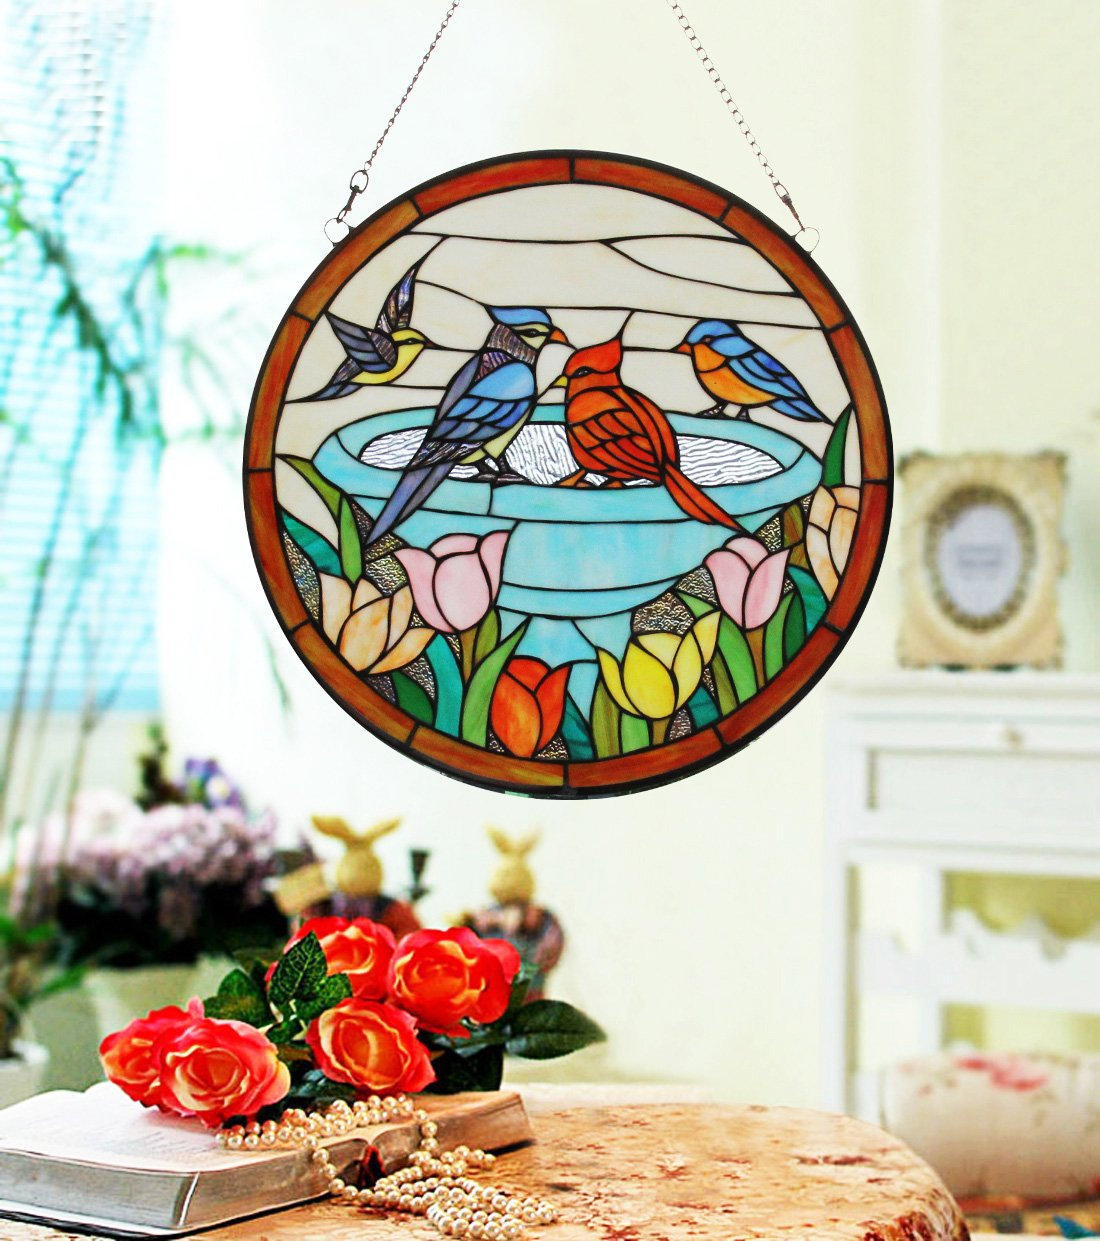 Makenier Vintage Tiffany Style Stained Church Art Glass Parrot and Tulip Round Window Panel Wall Hanging 3